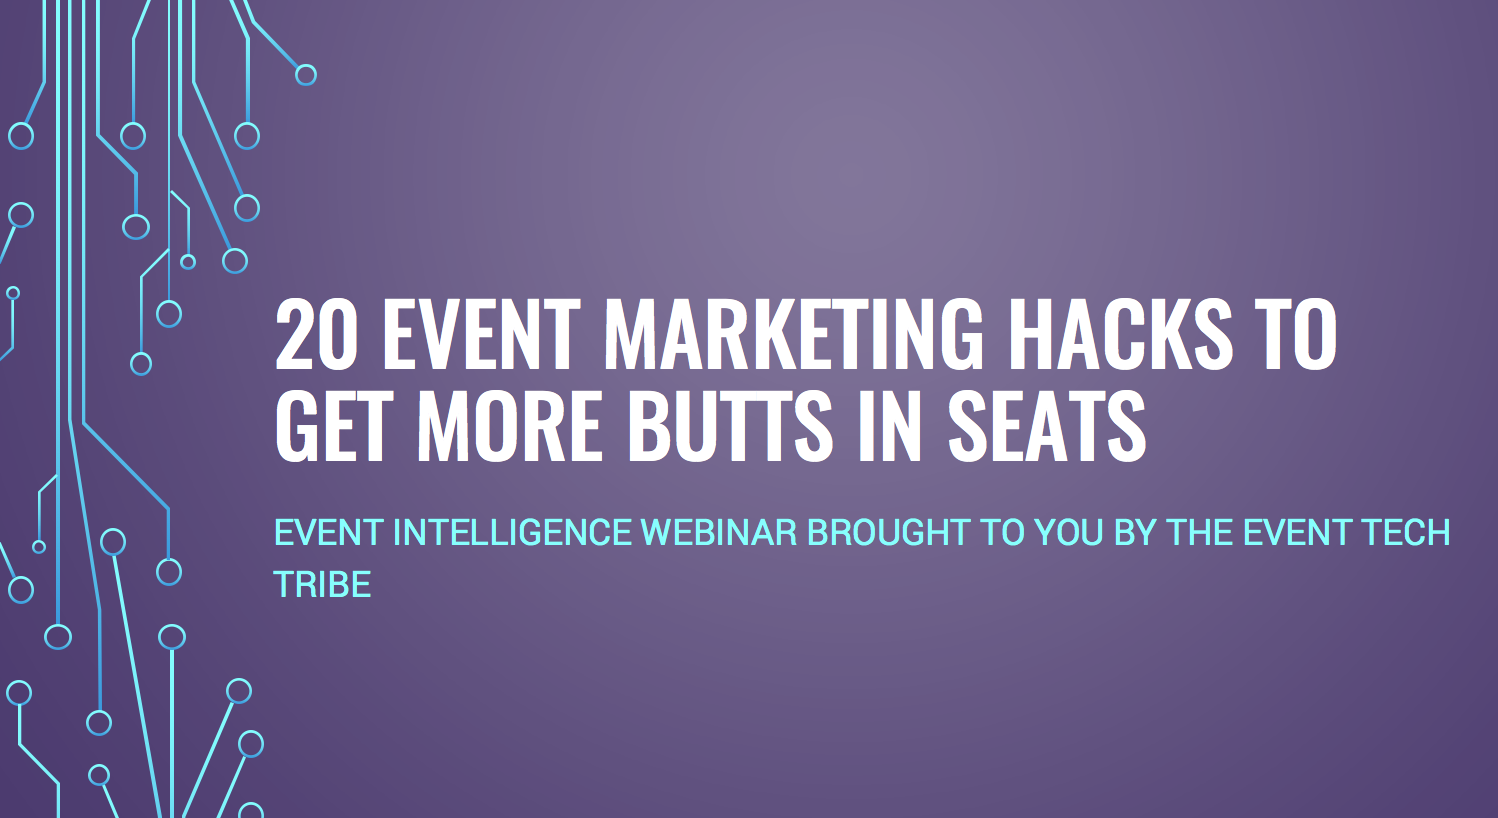 event marketing hacks